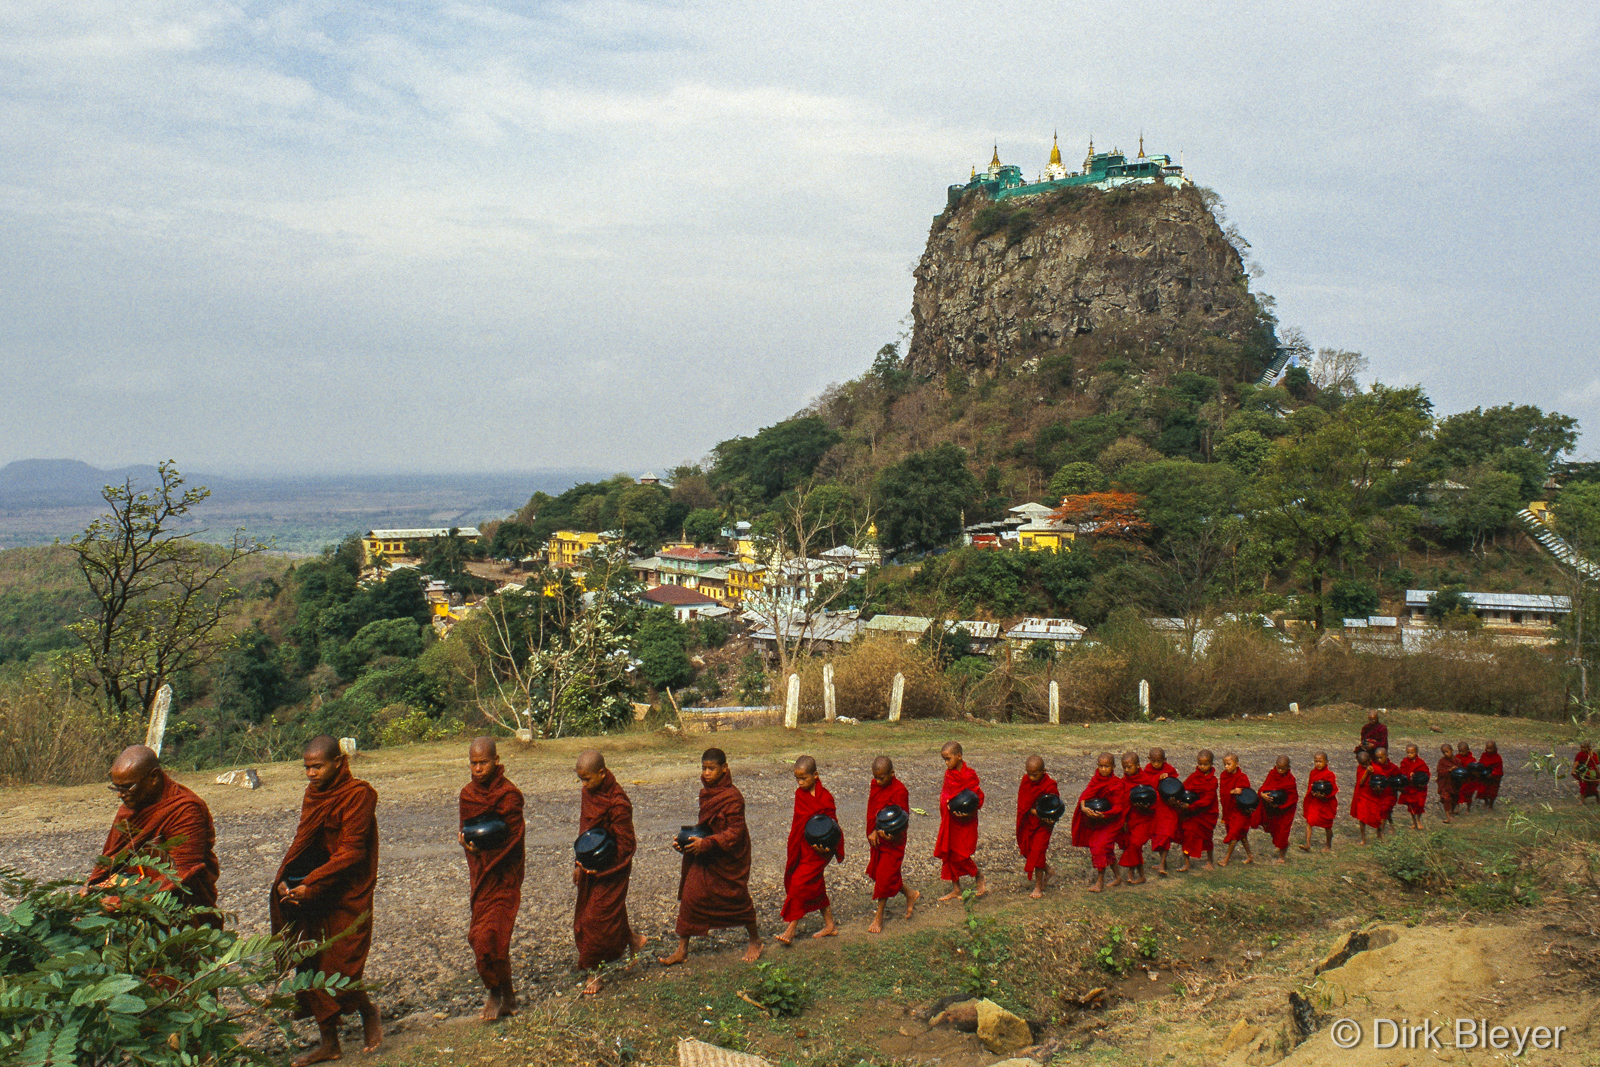 Morgendlicher Almosengang am Mount Popa